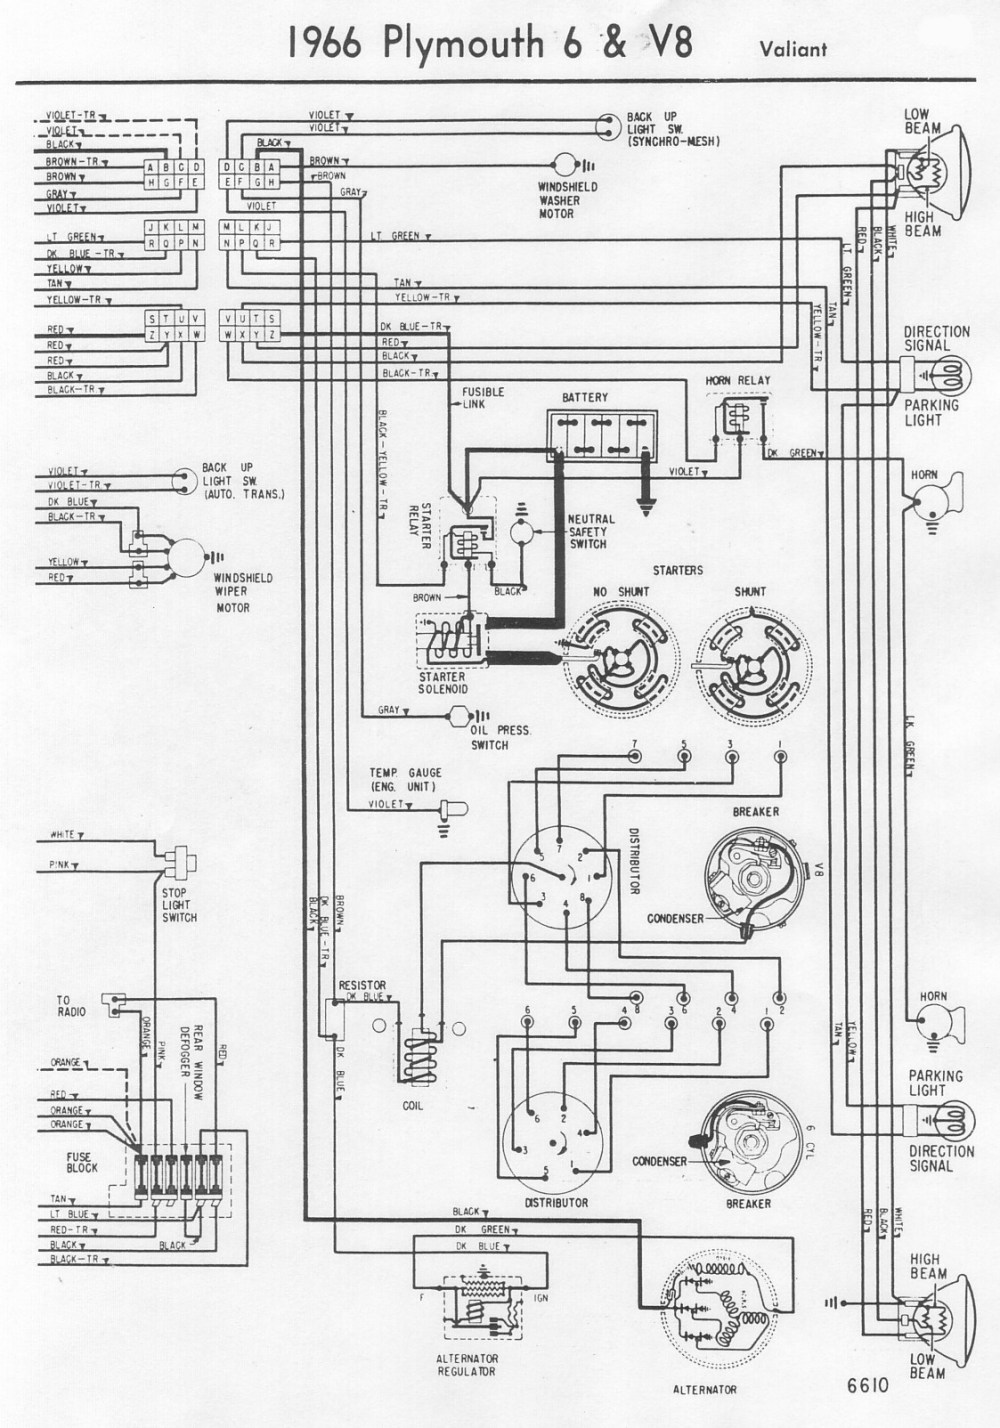 medium resolution of wiring diagram for 65 plymouth 6